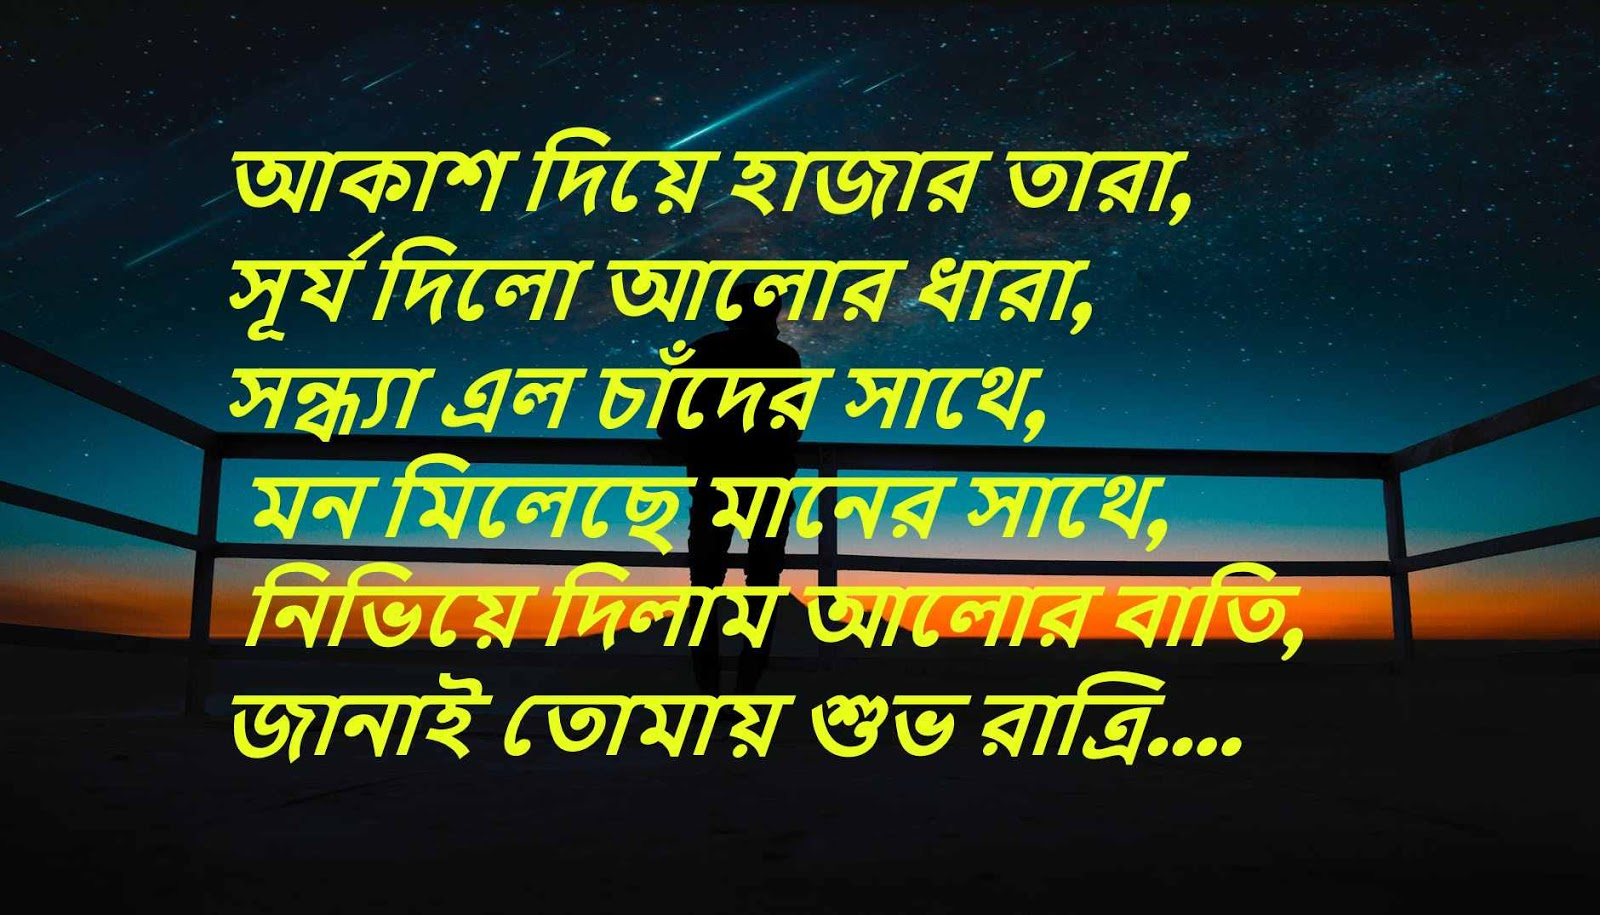 Fresh Images Of Good Night Wishes In Bengali Hd Greetings Images